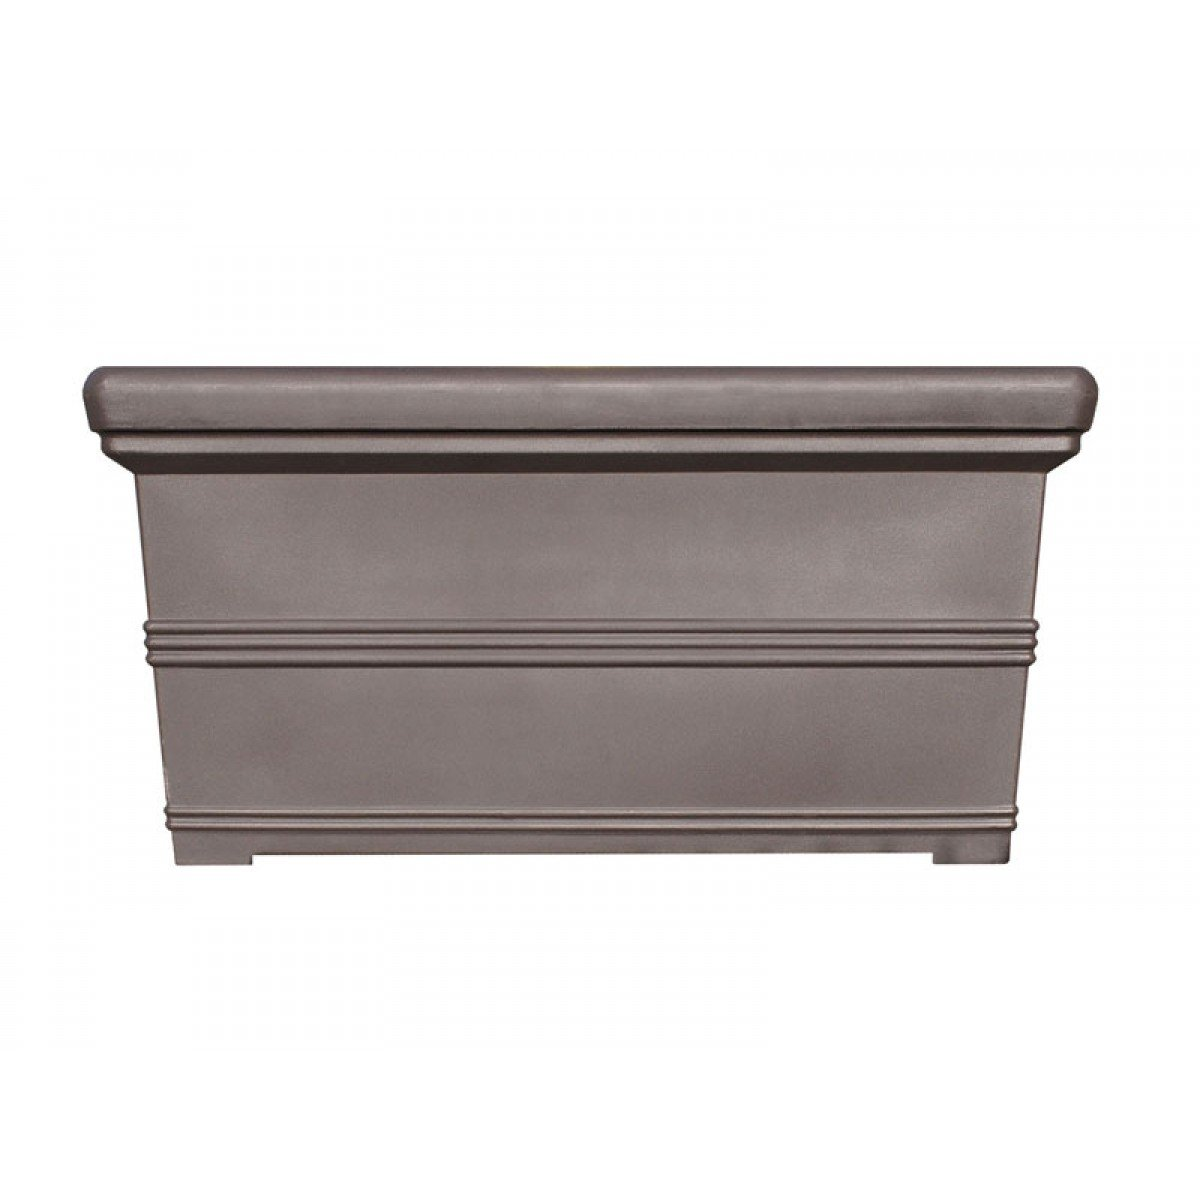 American Essence EP-AETAC-ESP-48 48 x 18 x 24 in. Tacoma Rectangle Planter44; Espresso by American Essence